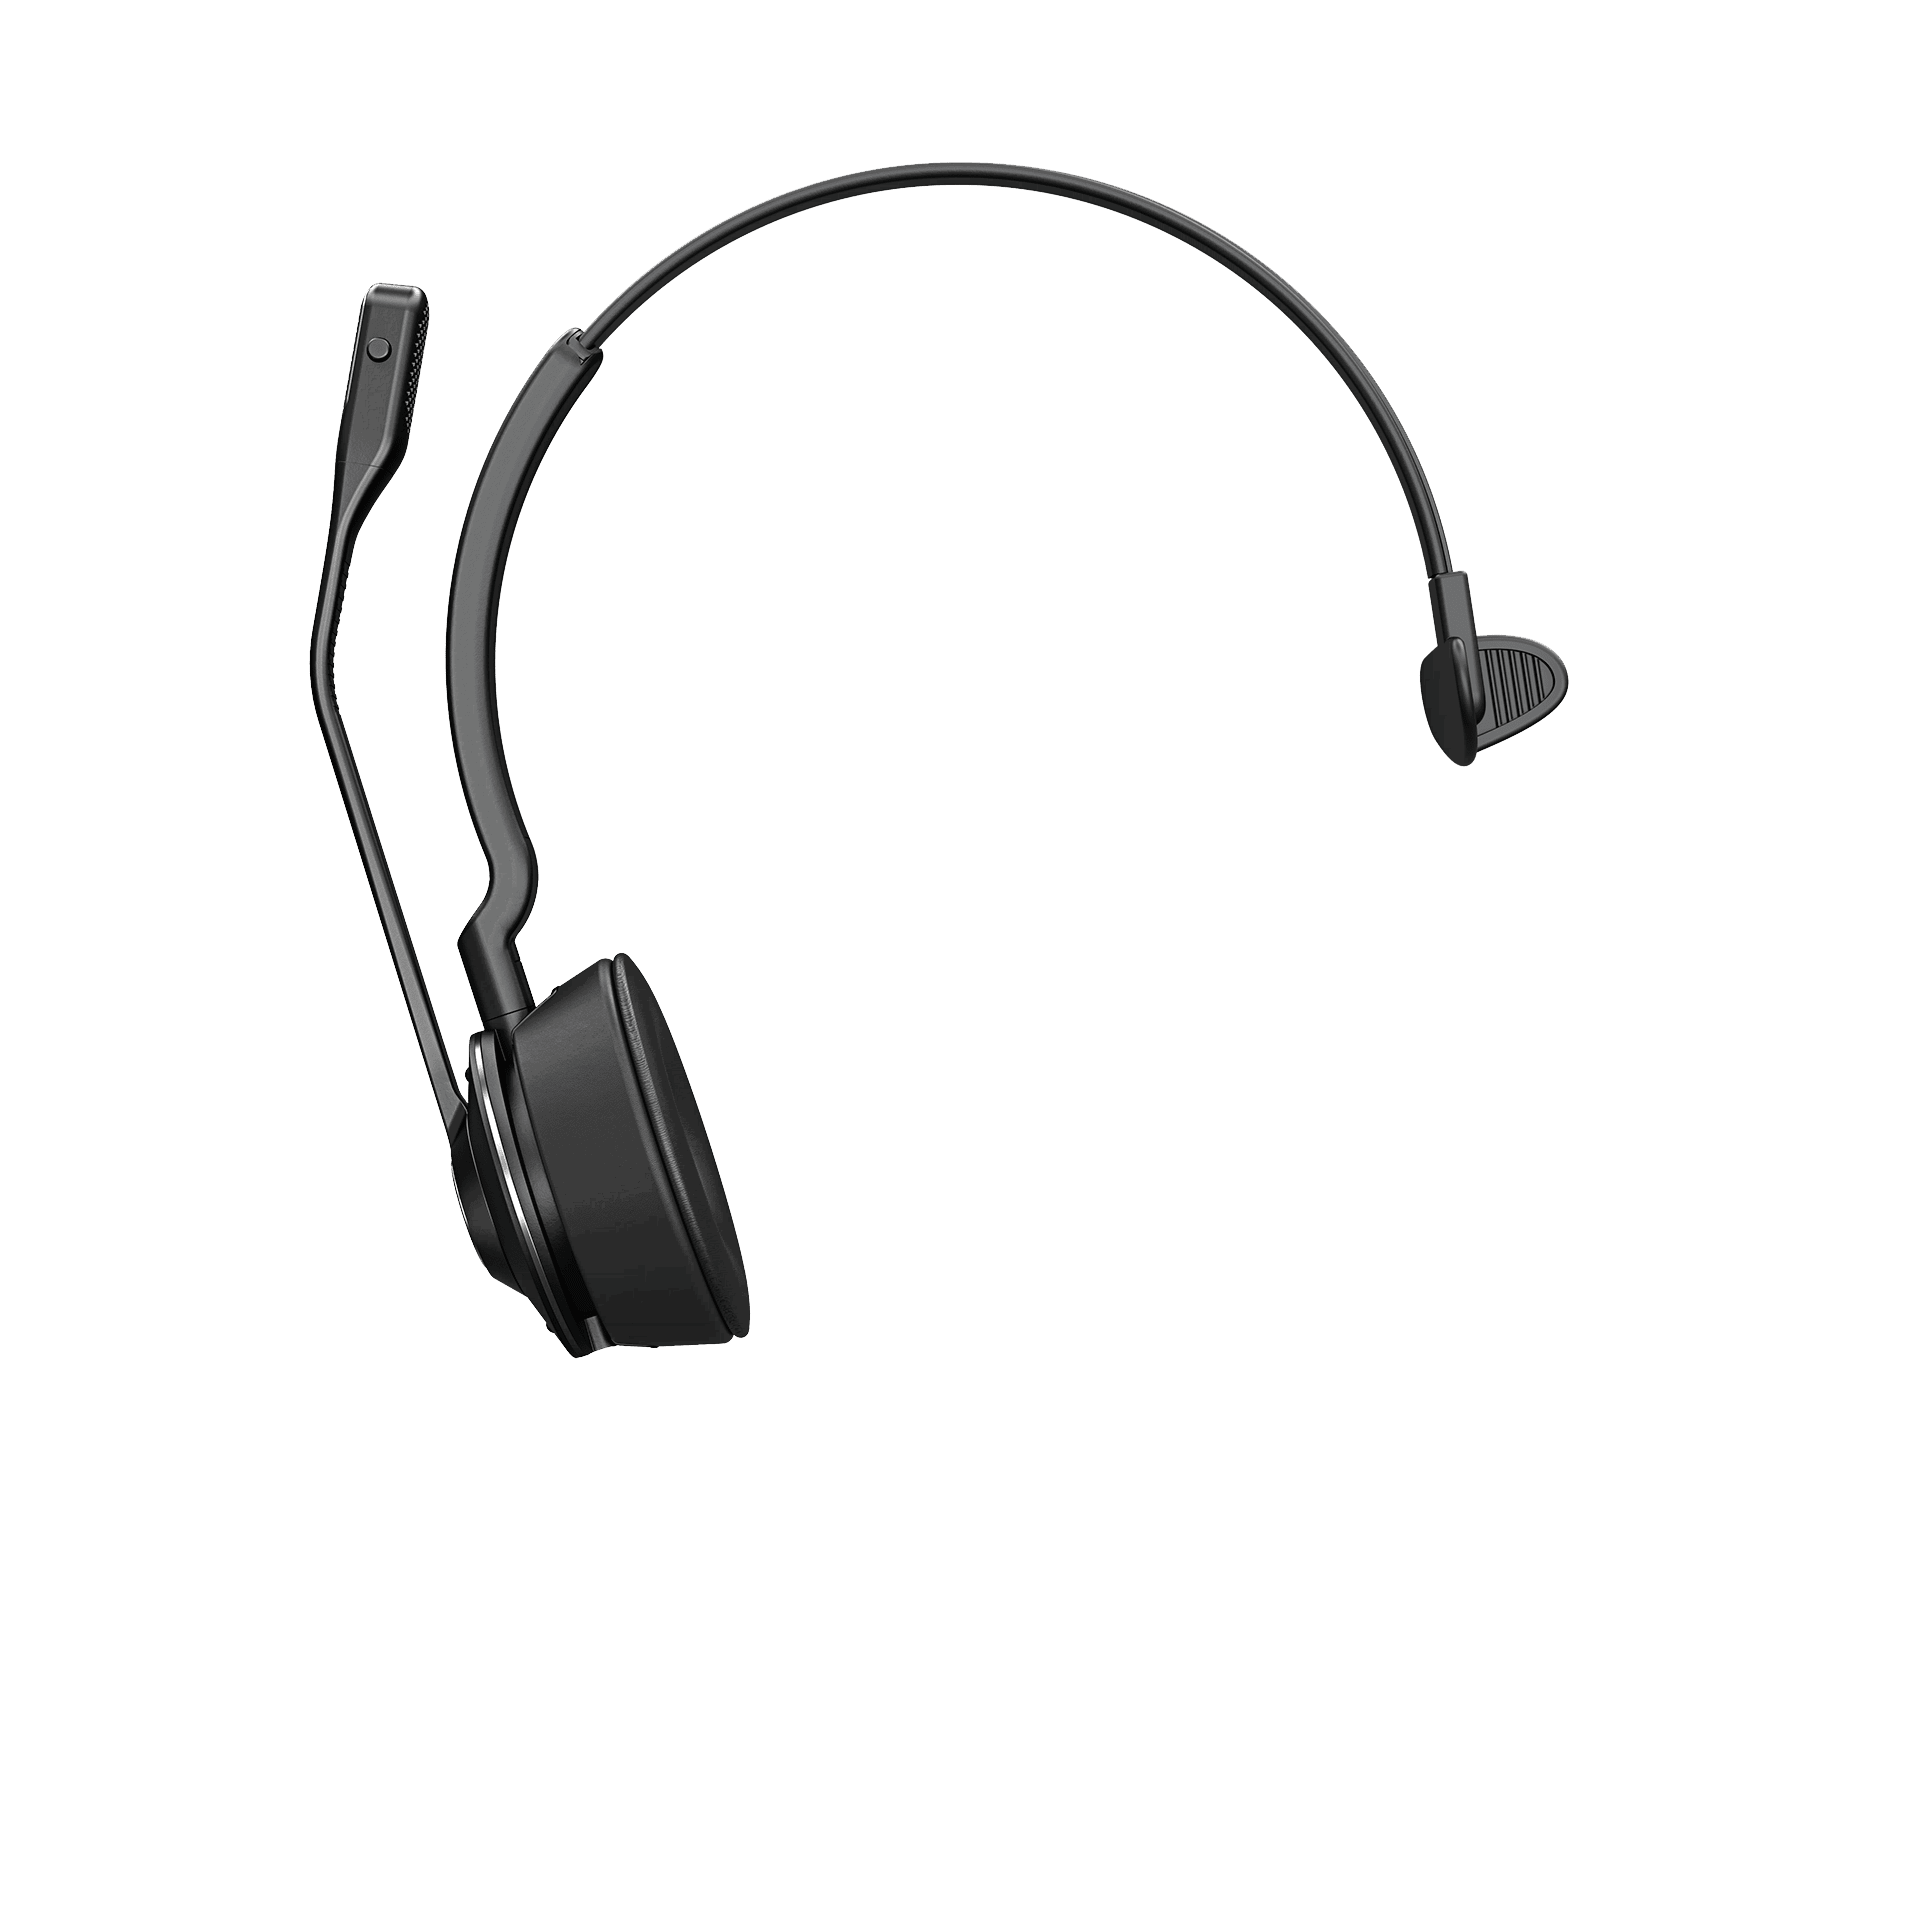 Jabra Engage 65 Mono Wireless Headset 9553 553 125 Headsets Direct Inc